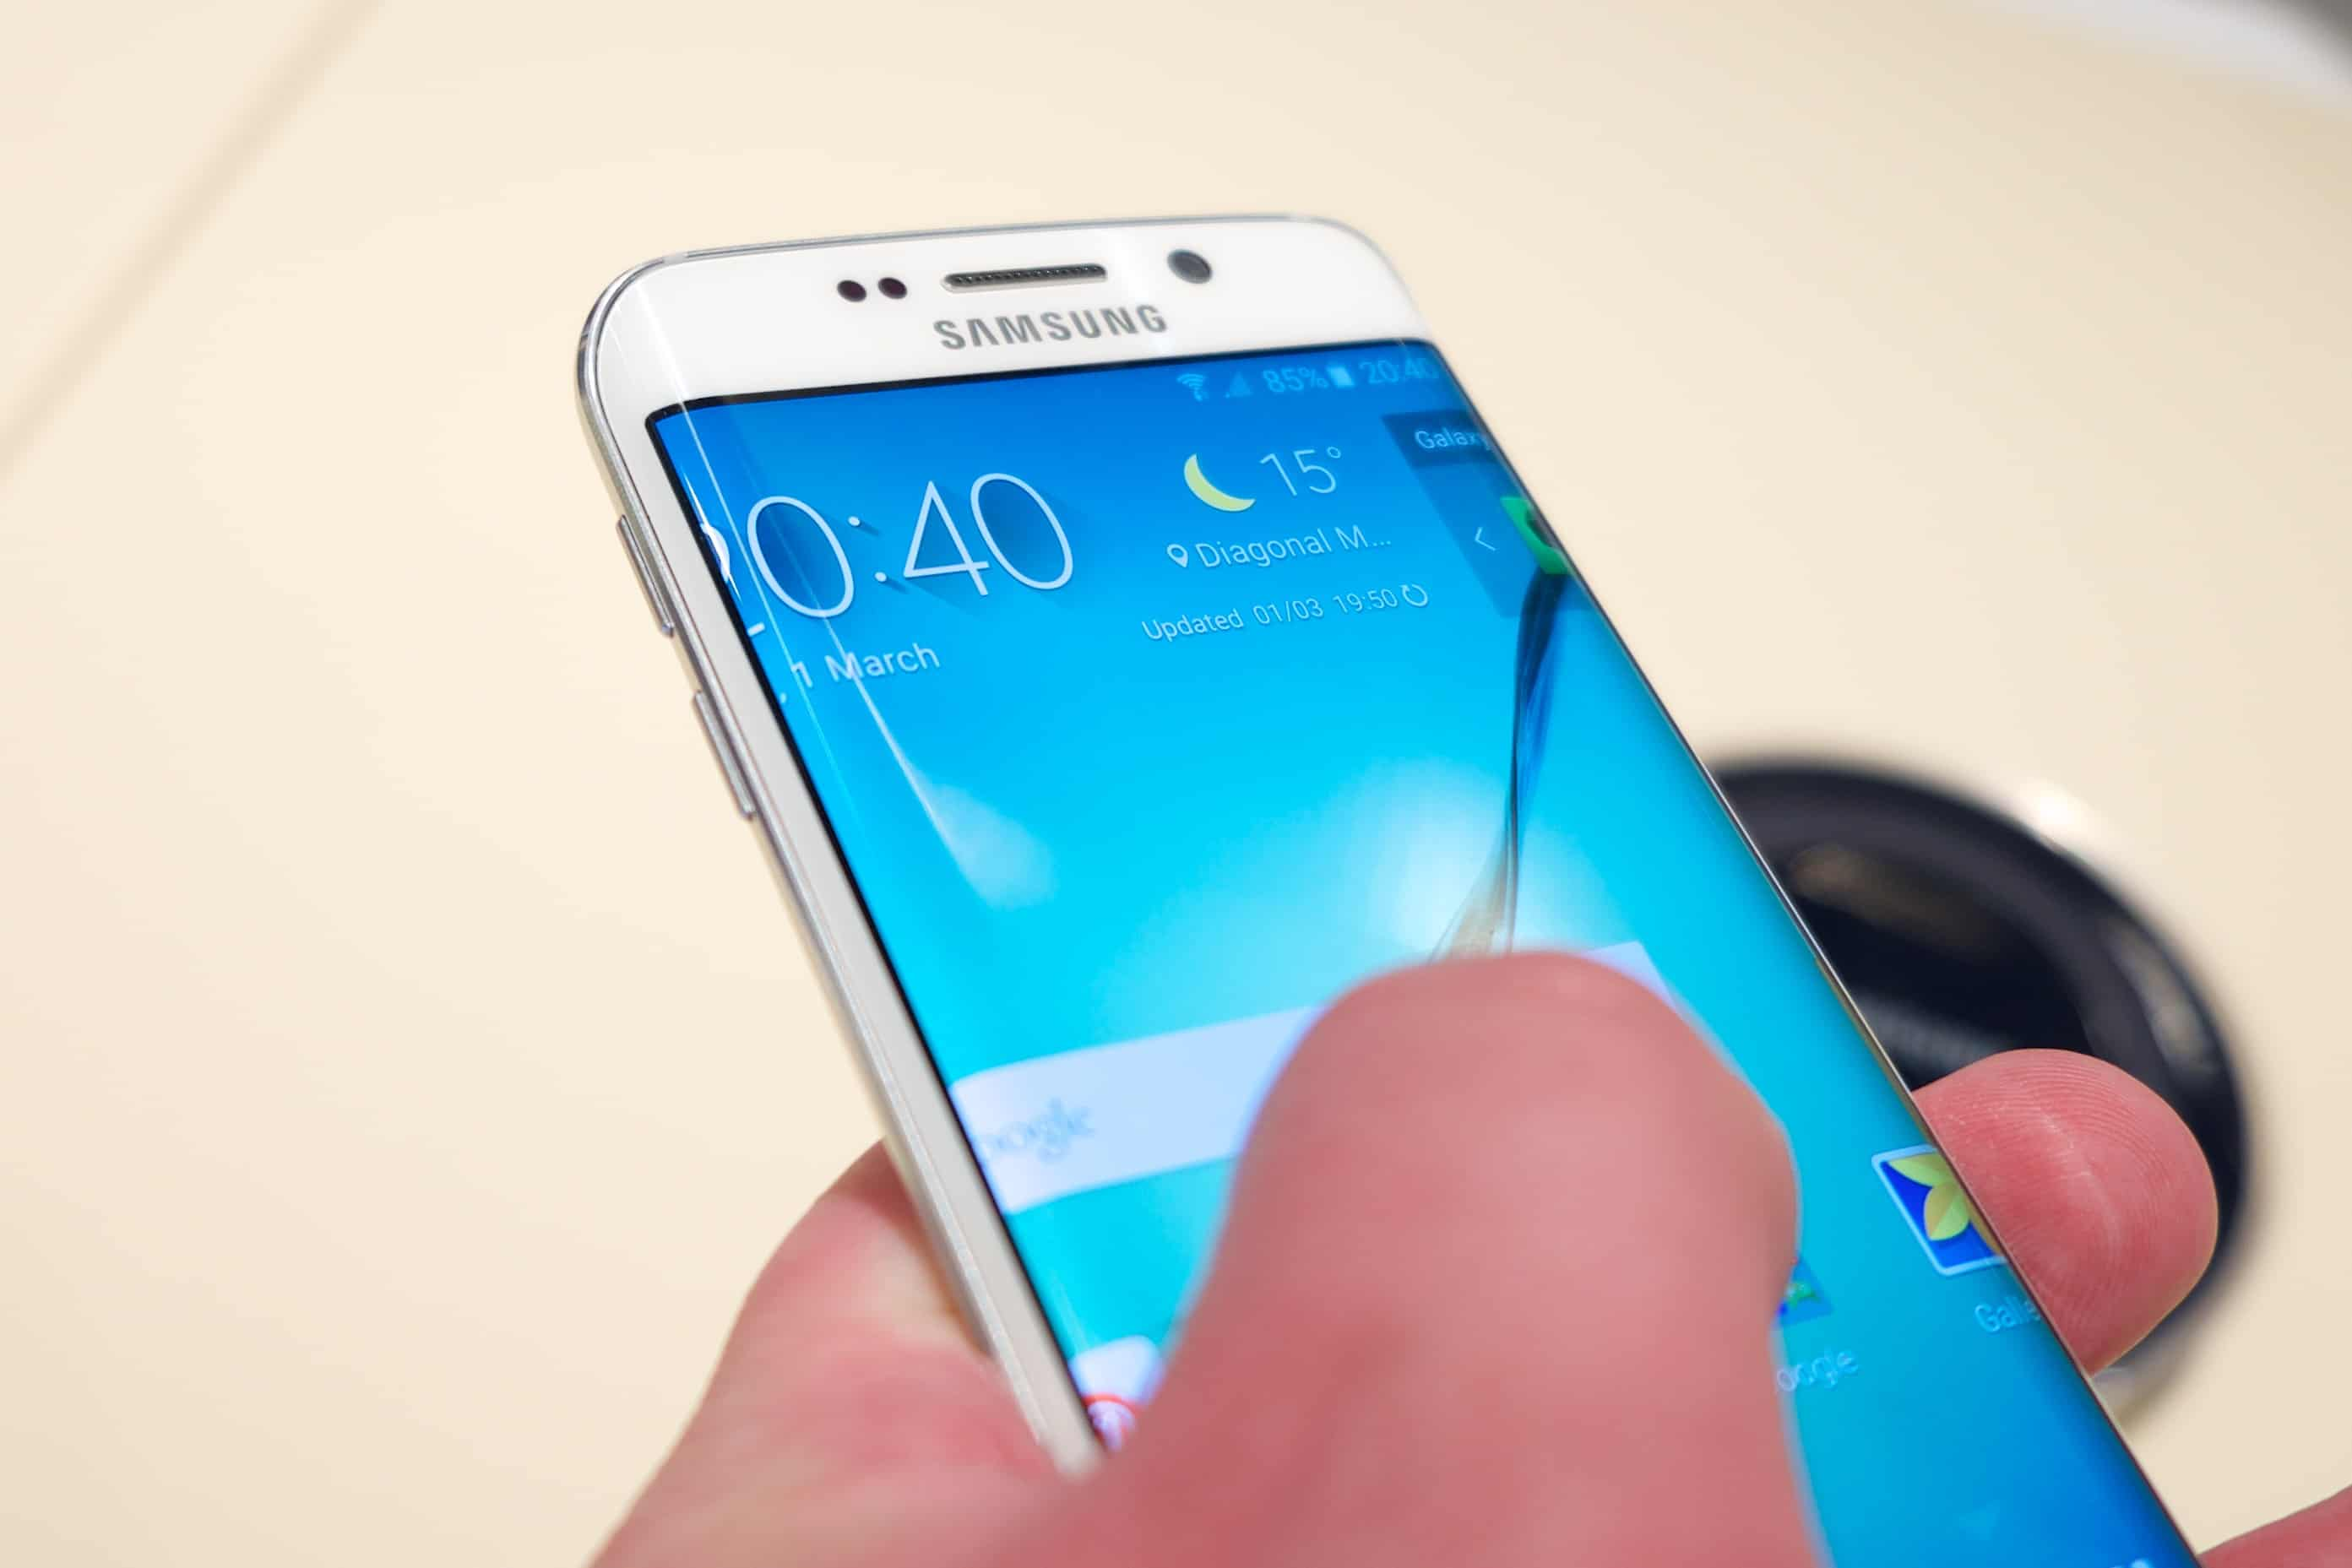 TouchWiz UI Galaxy Note 6, Galaxy Note 6 TouchWiz, Android N on Galaxy Note 6